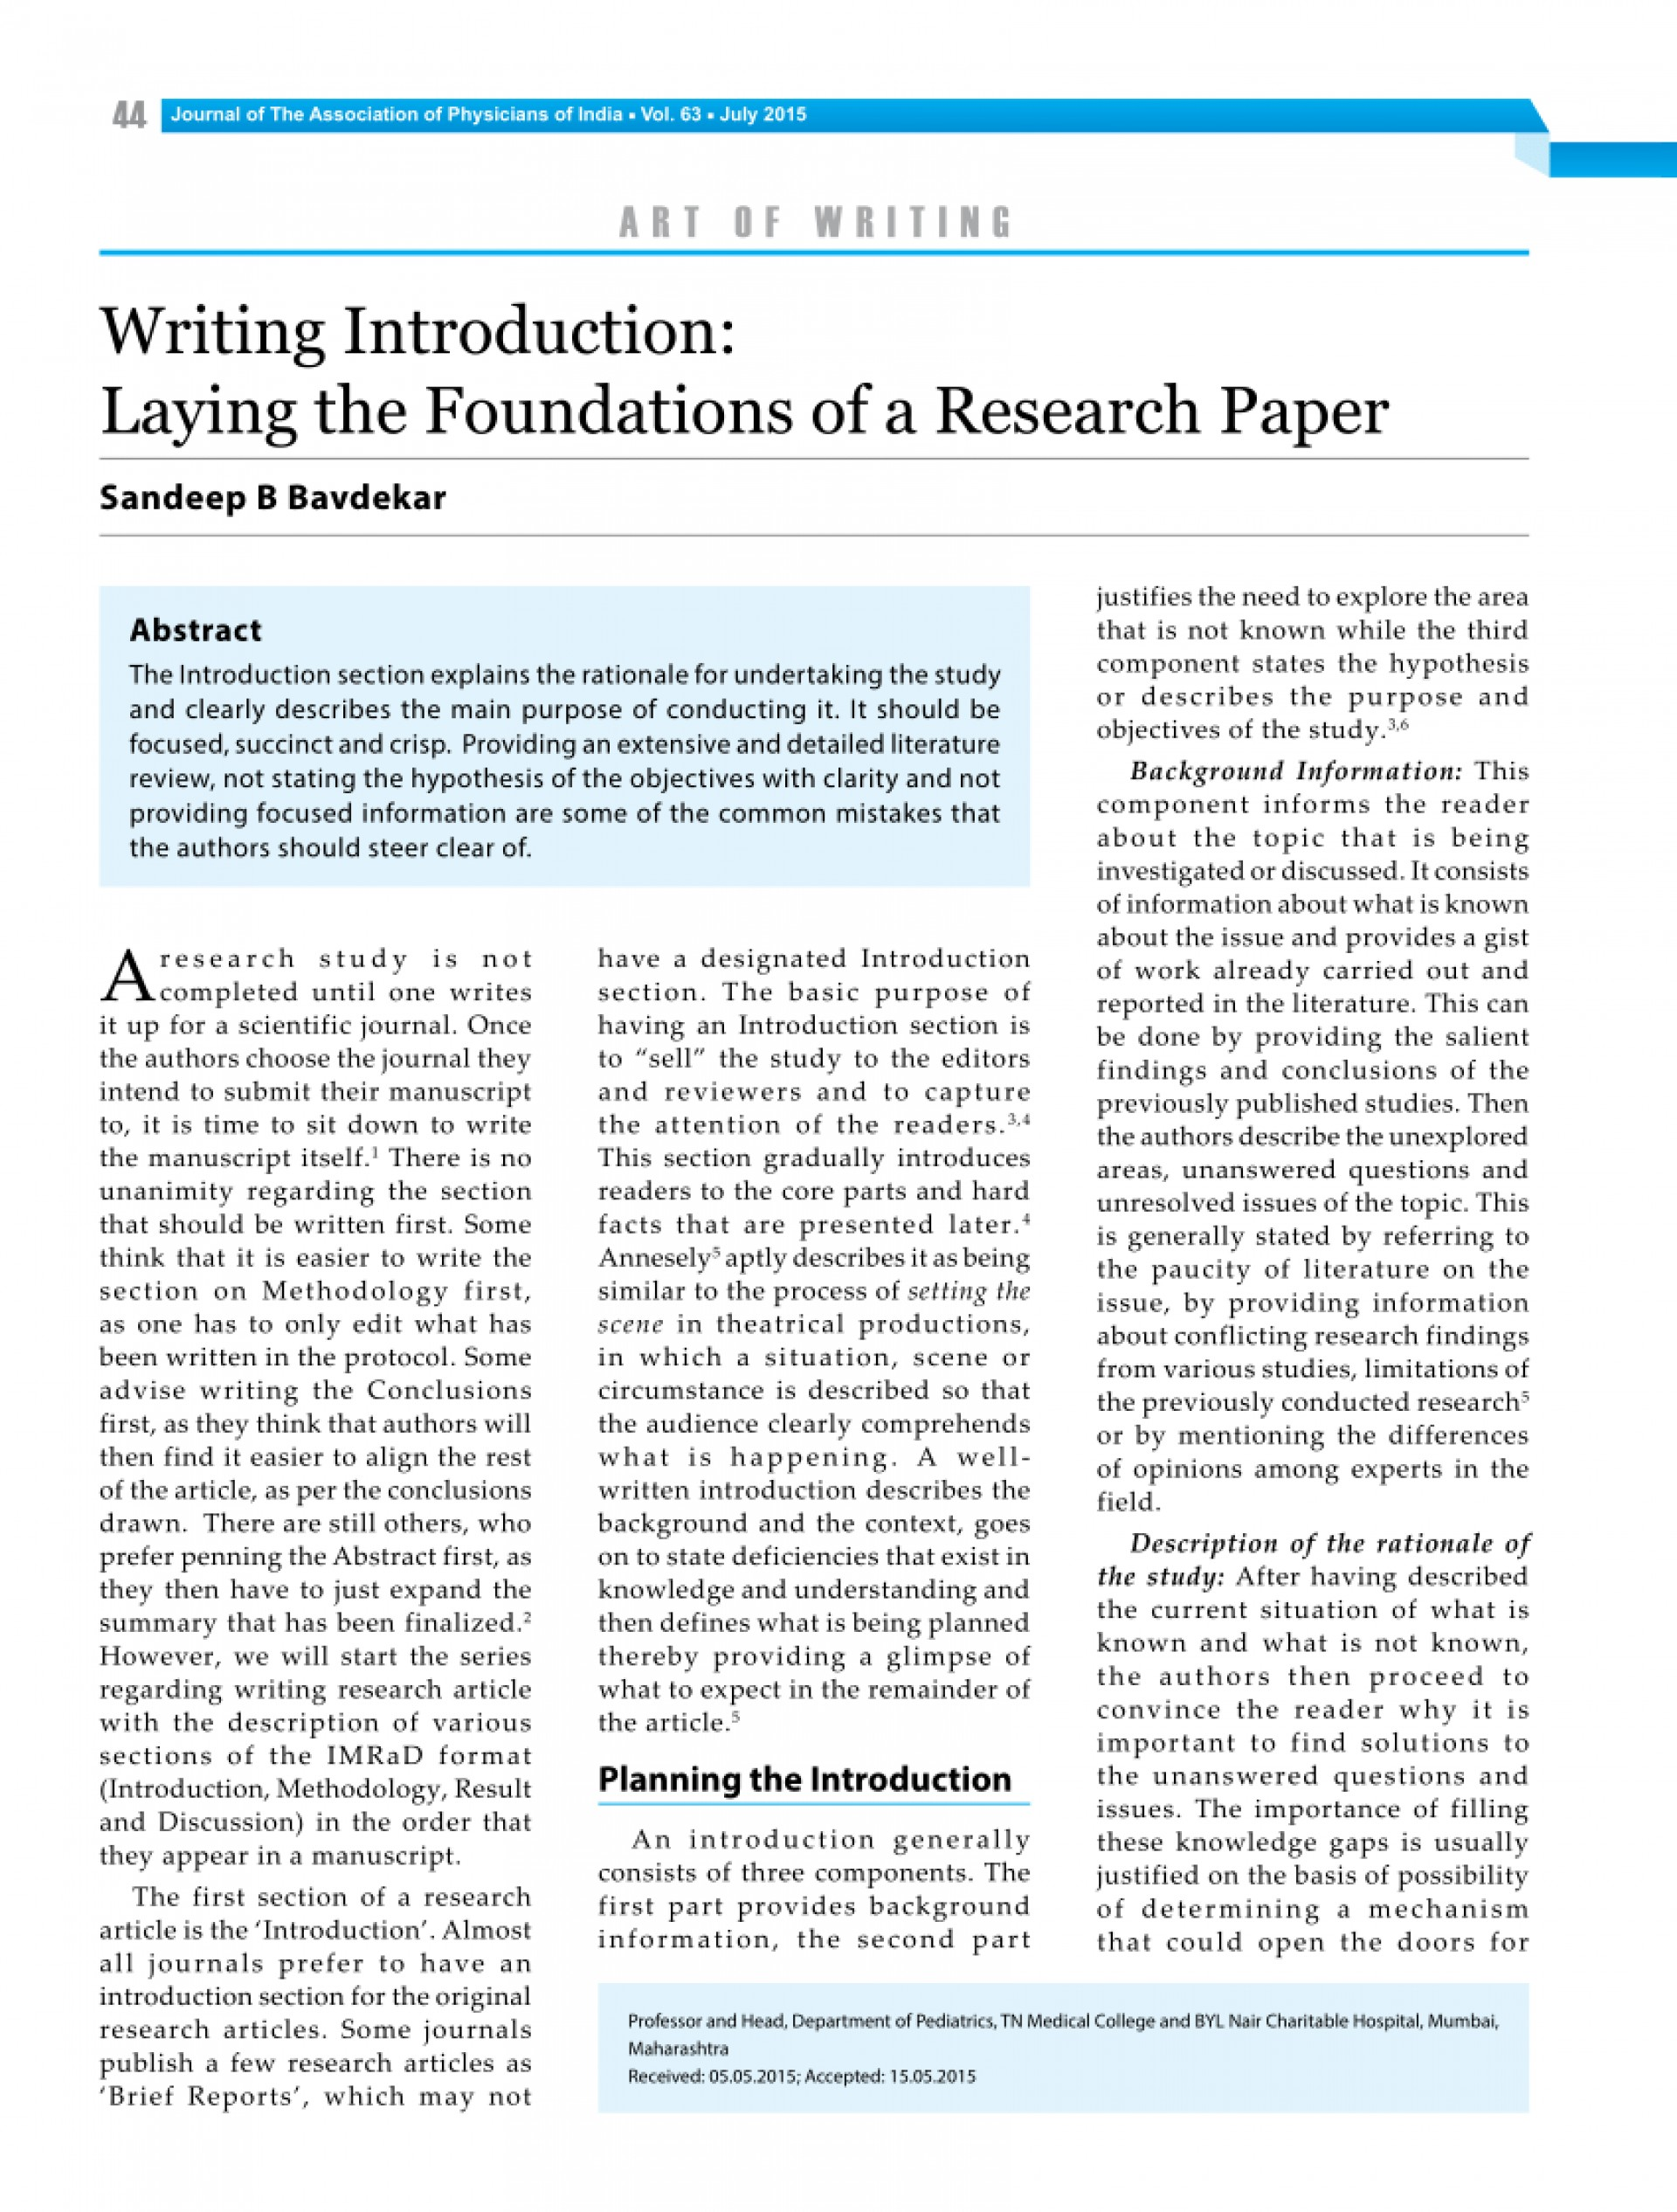 006 Example Of An Introduction For Research Paper Excellent A Apa Sample In Pdf 1920